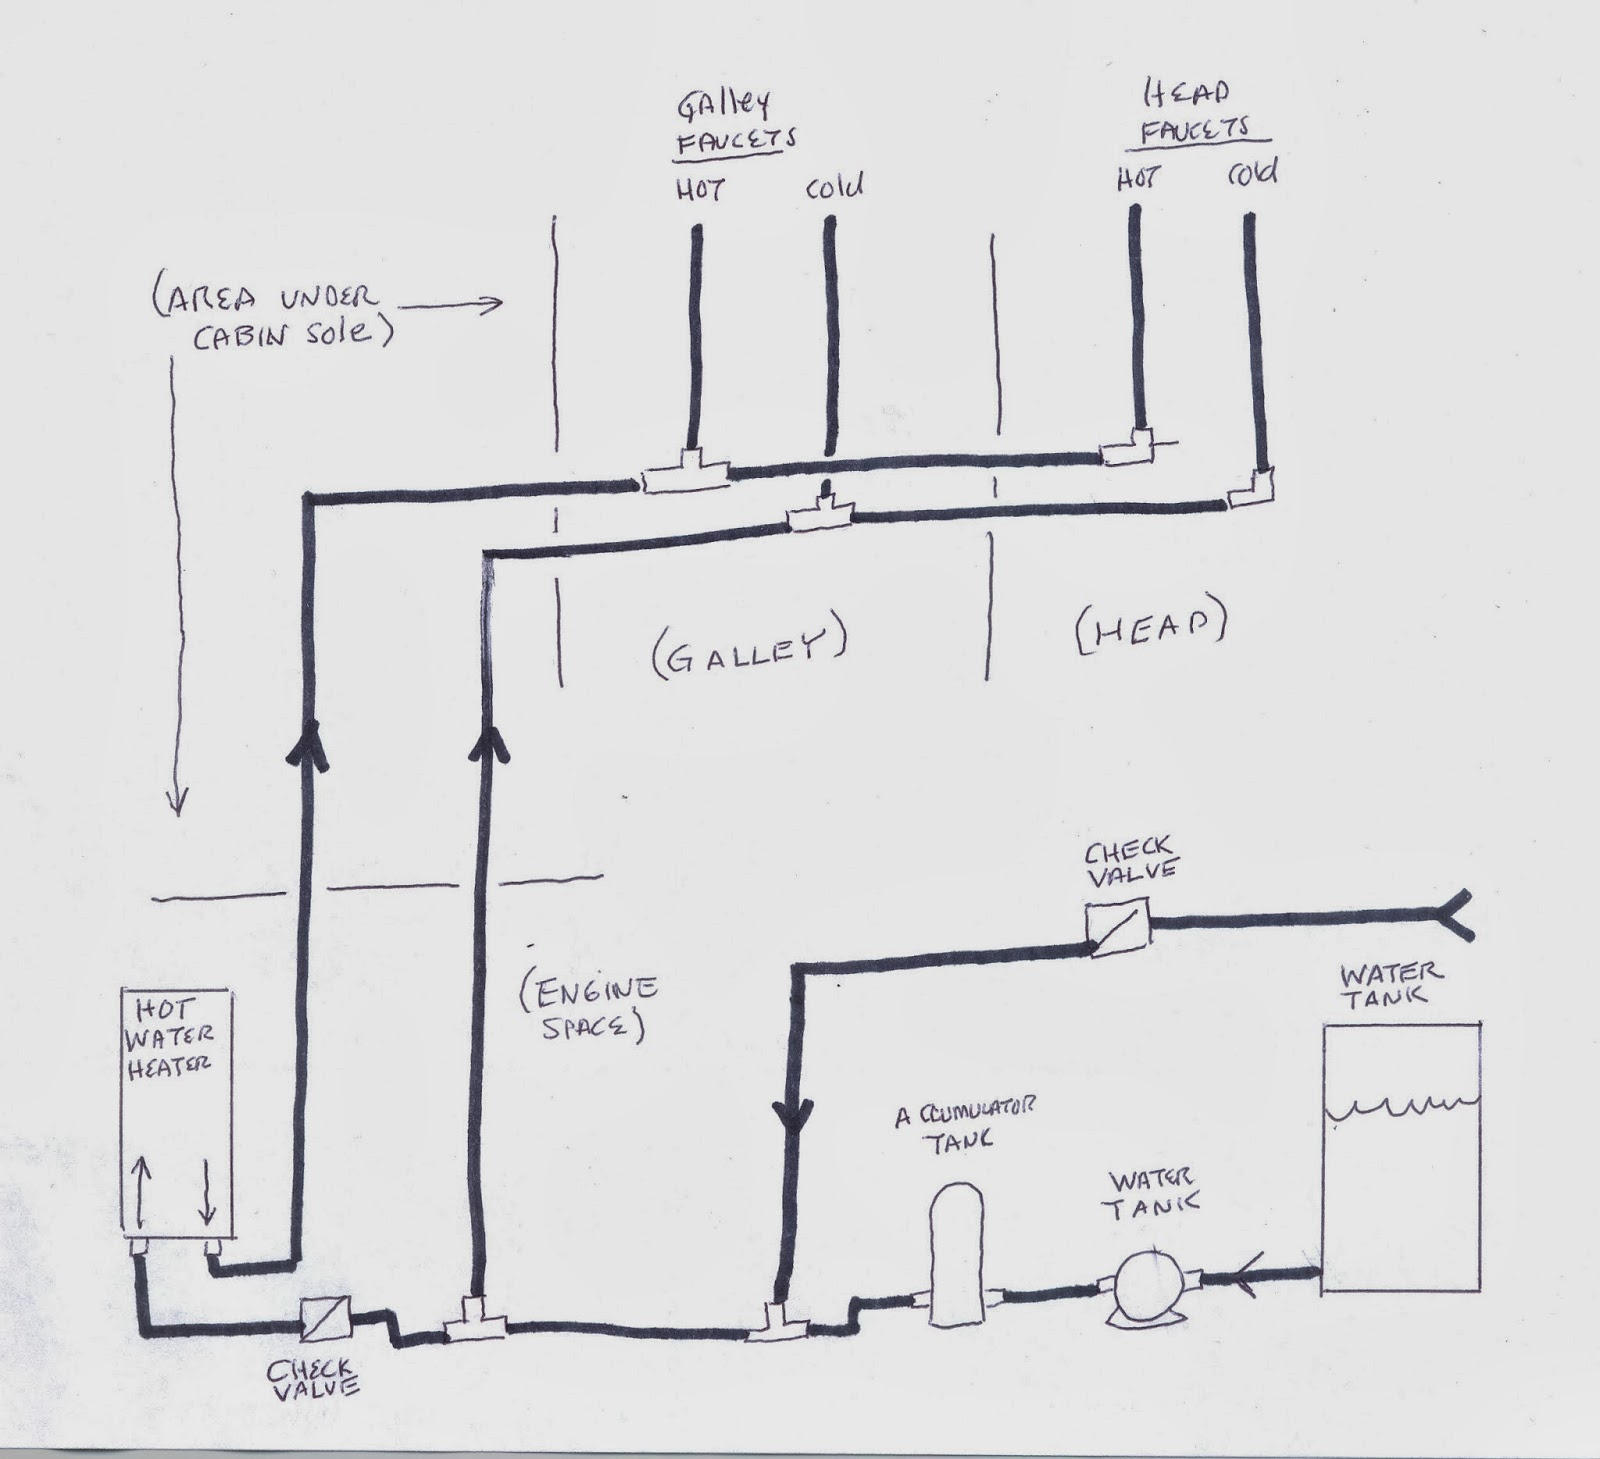 How to do plumbing for a toilet wiring diagrams wiring for Plumbing schematic